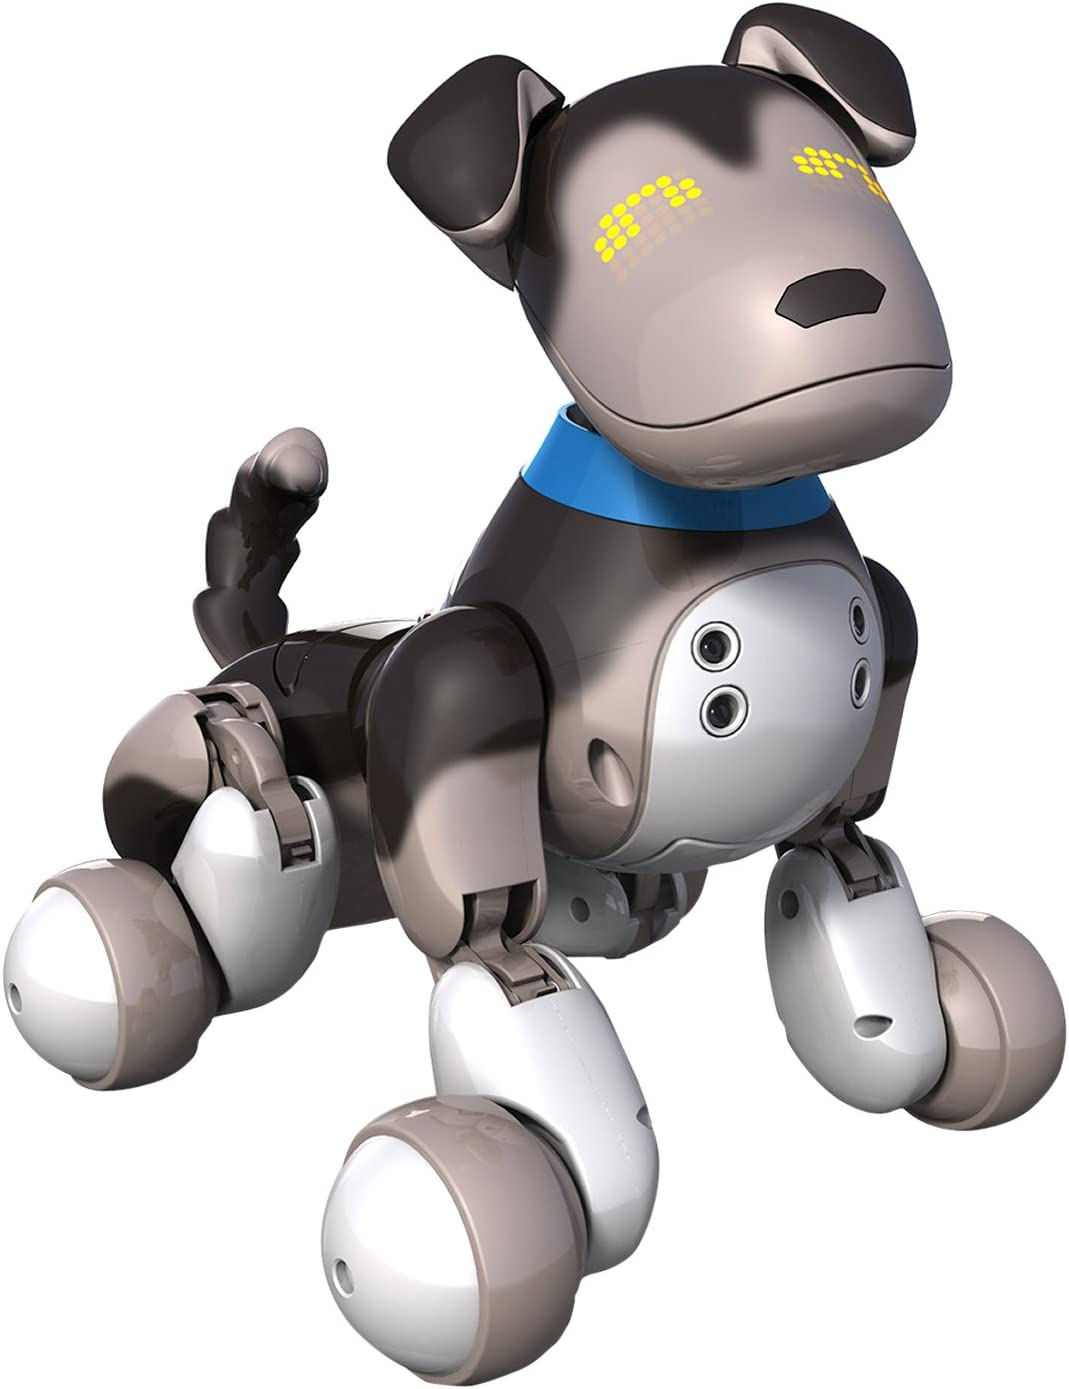 Top 10 Best Robot Pets For Kids (2020 Reviews & Buying Guide) 6